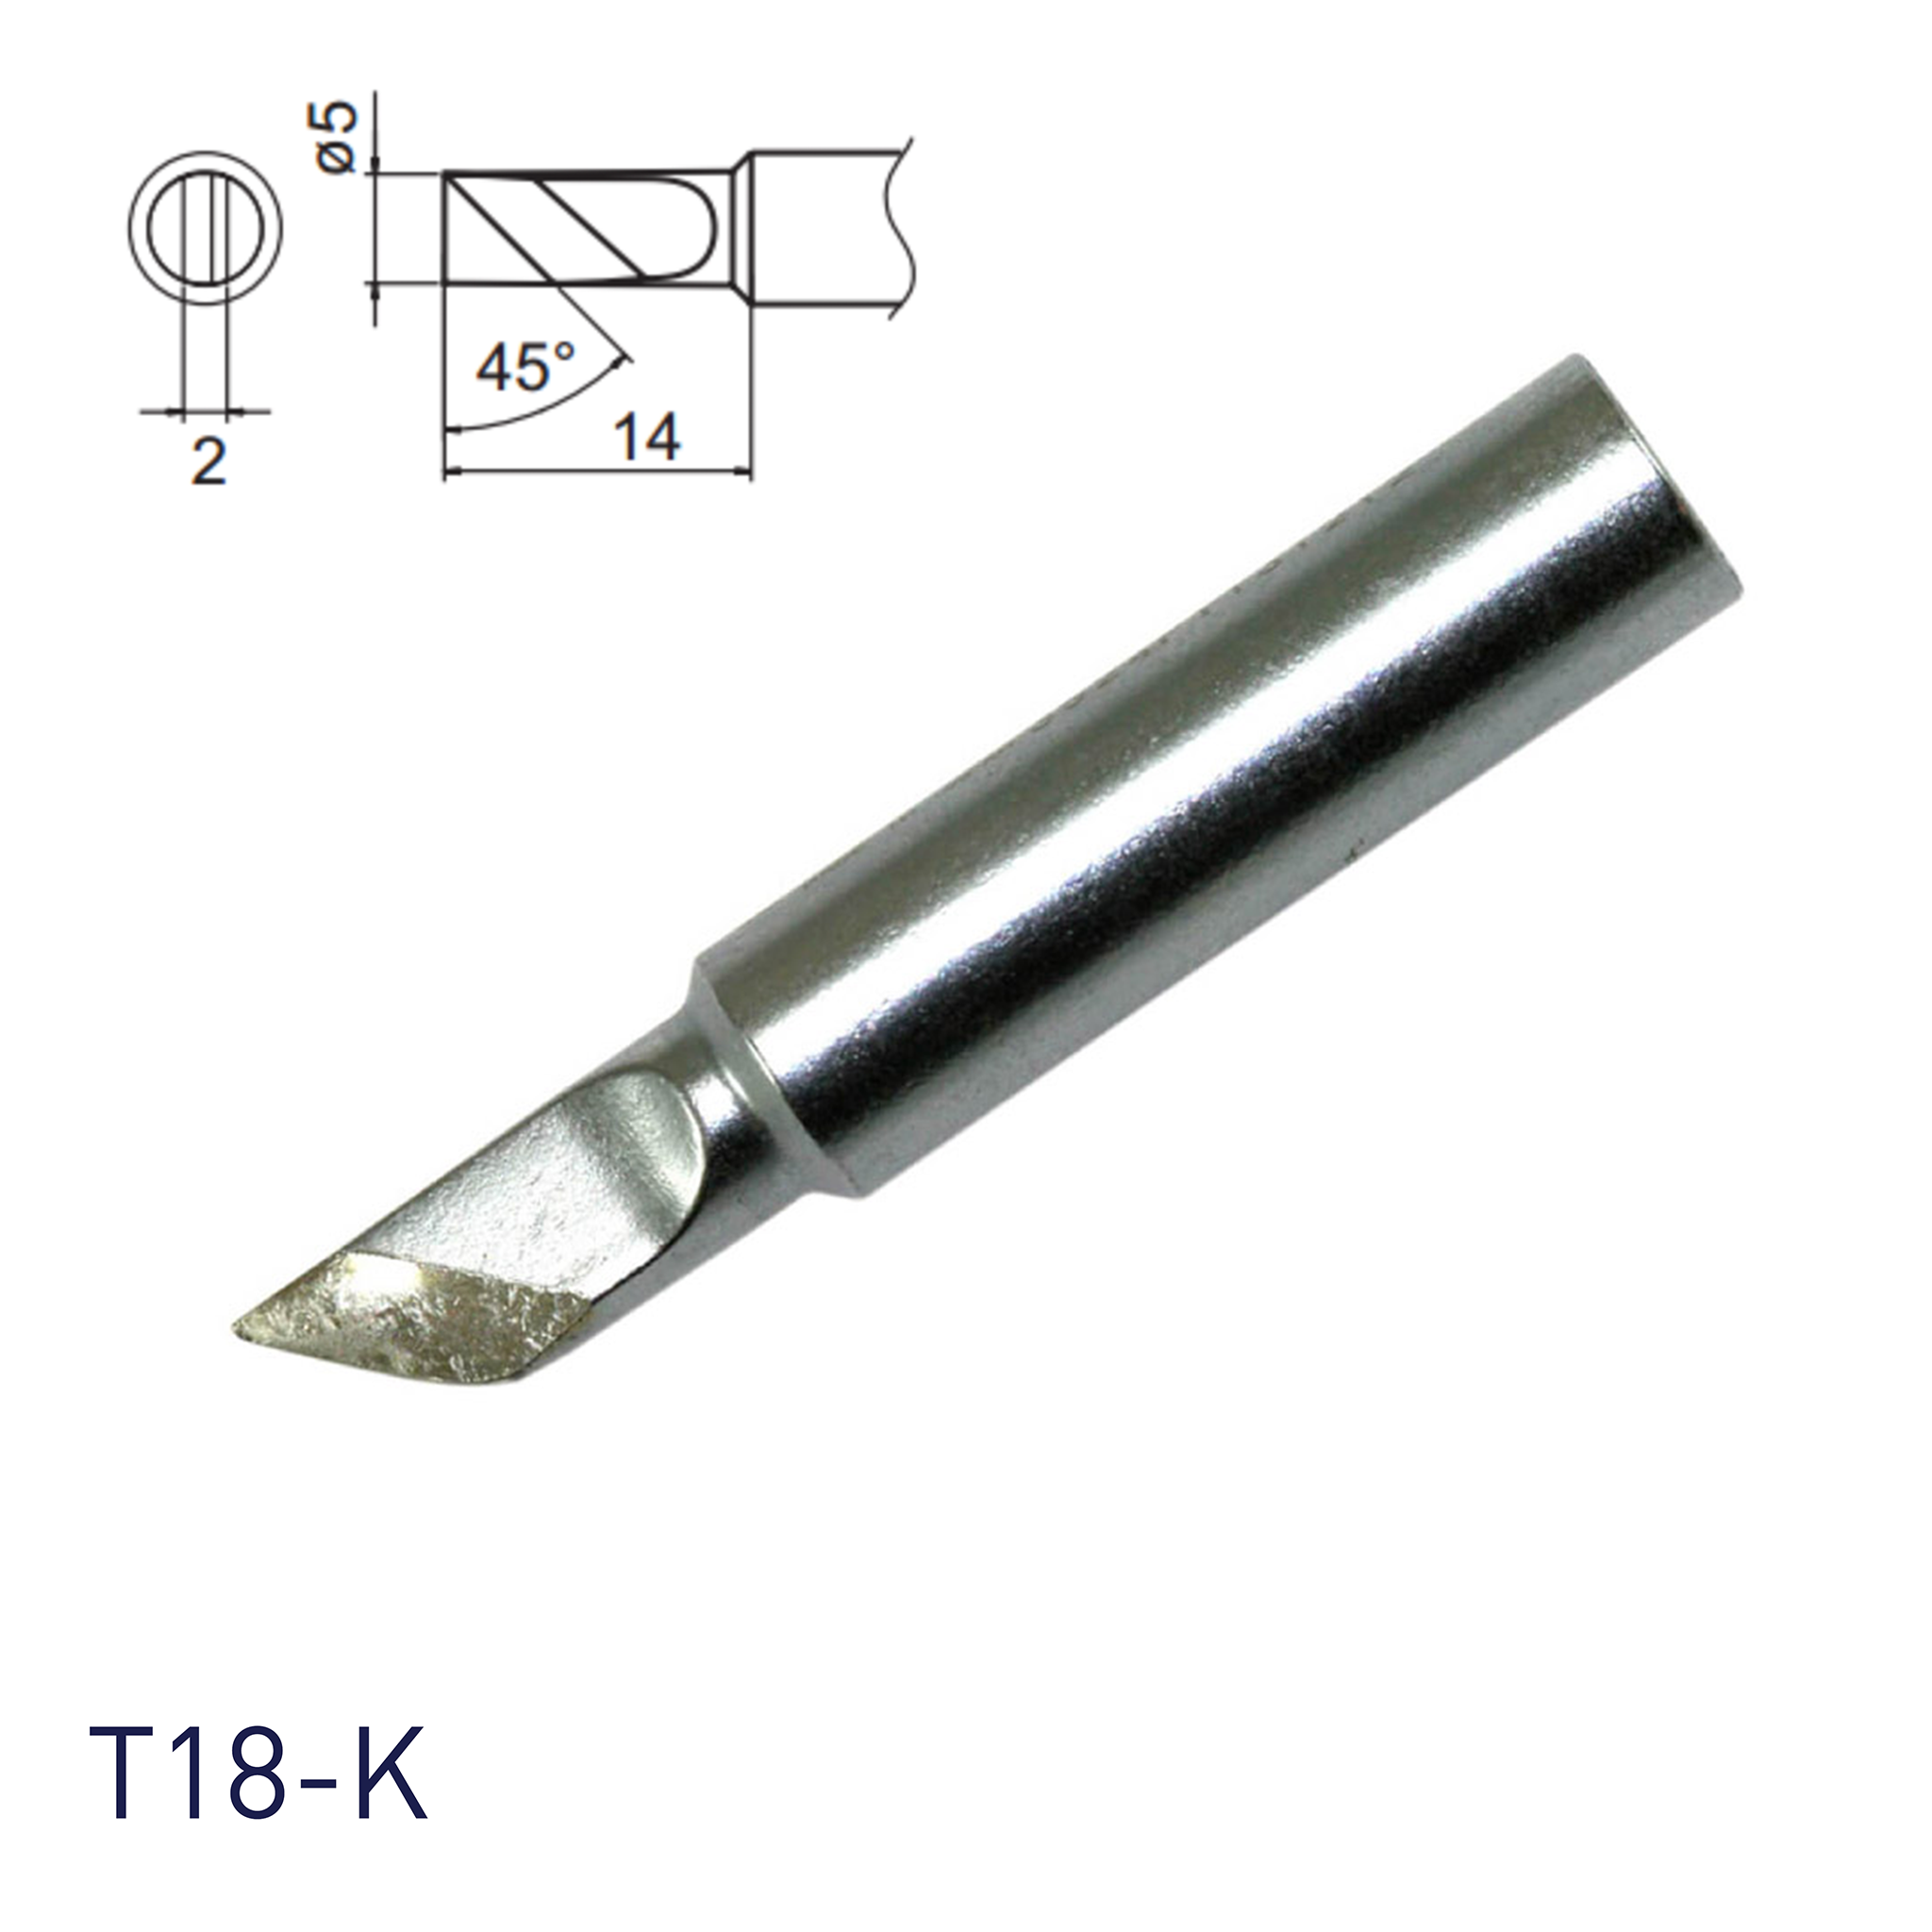 T18-K - Hakko Products Pte Ltd